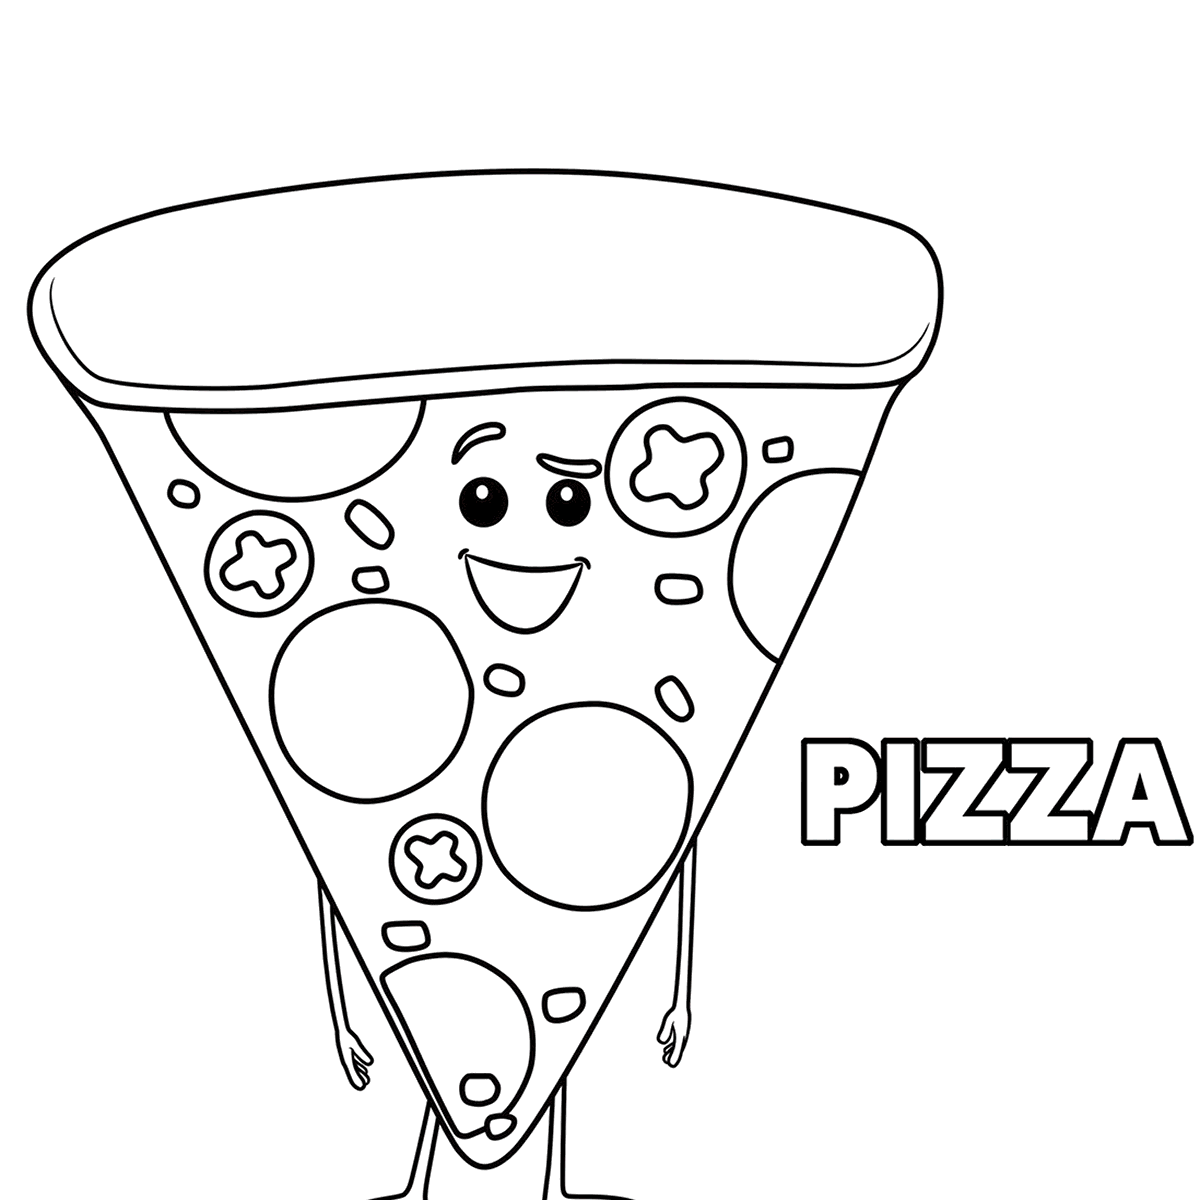 Pizza Toppings Coloring Pages At Getcolorings